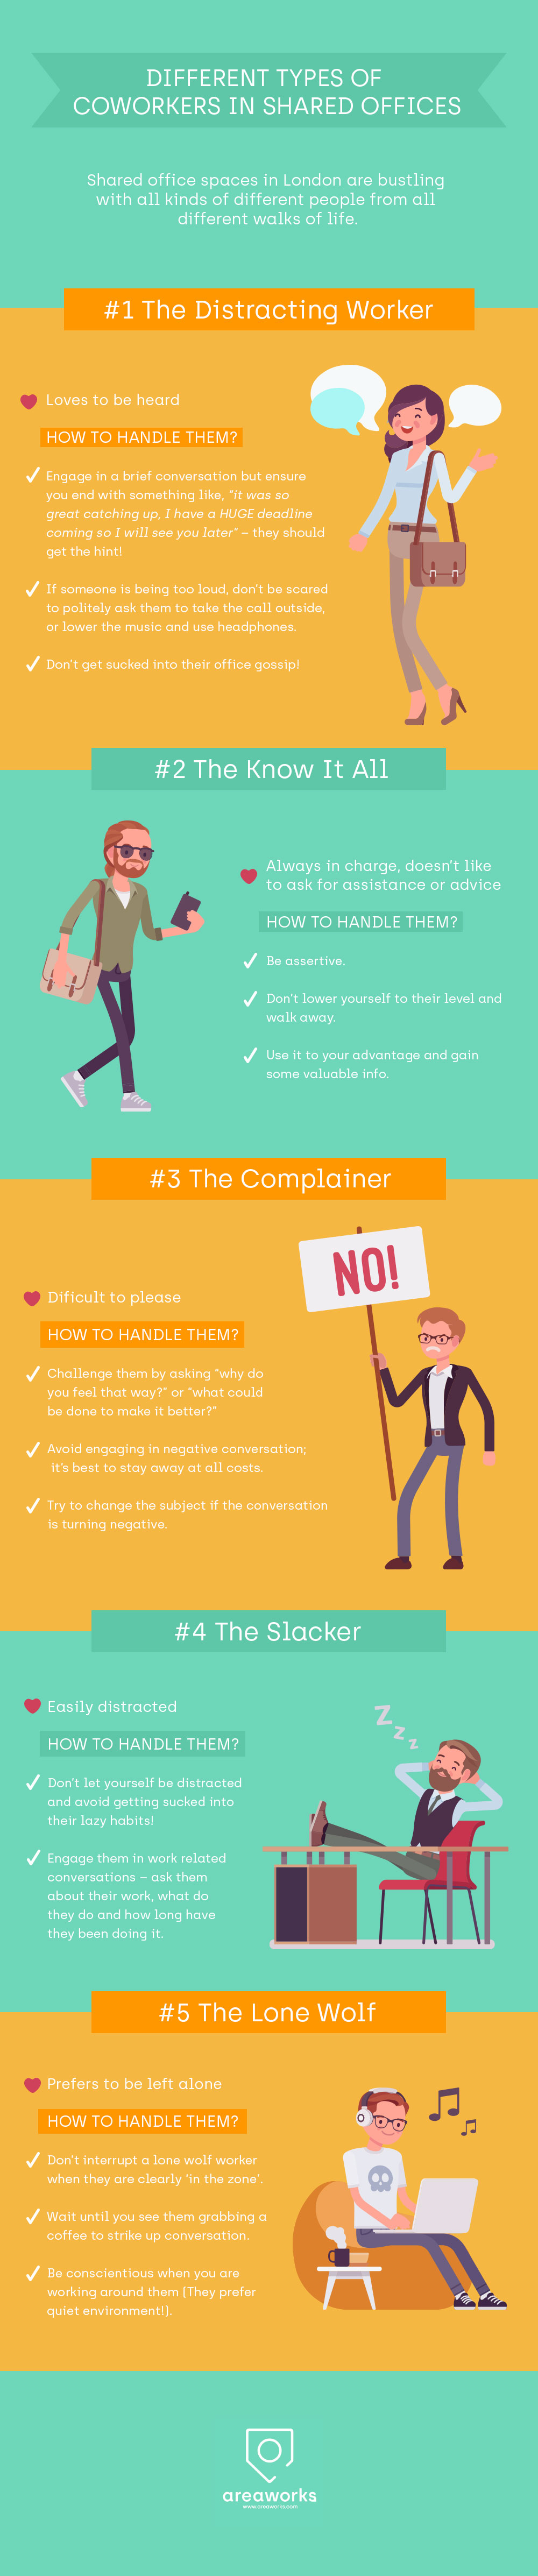 5 Types of Coworkers in Shared Offices